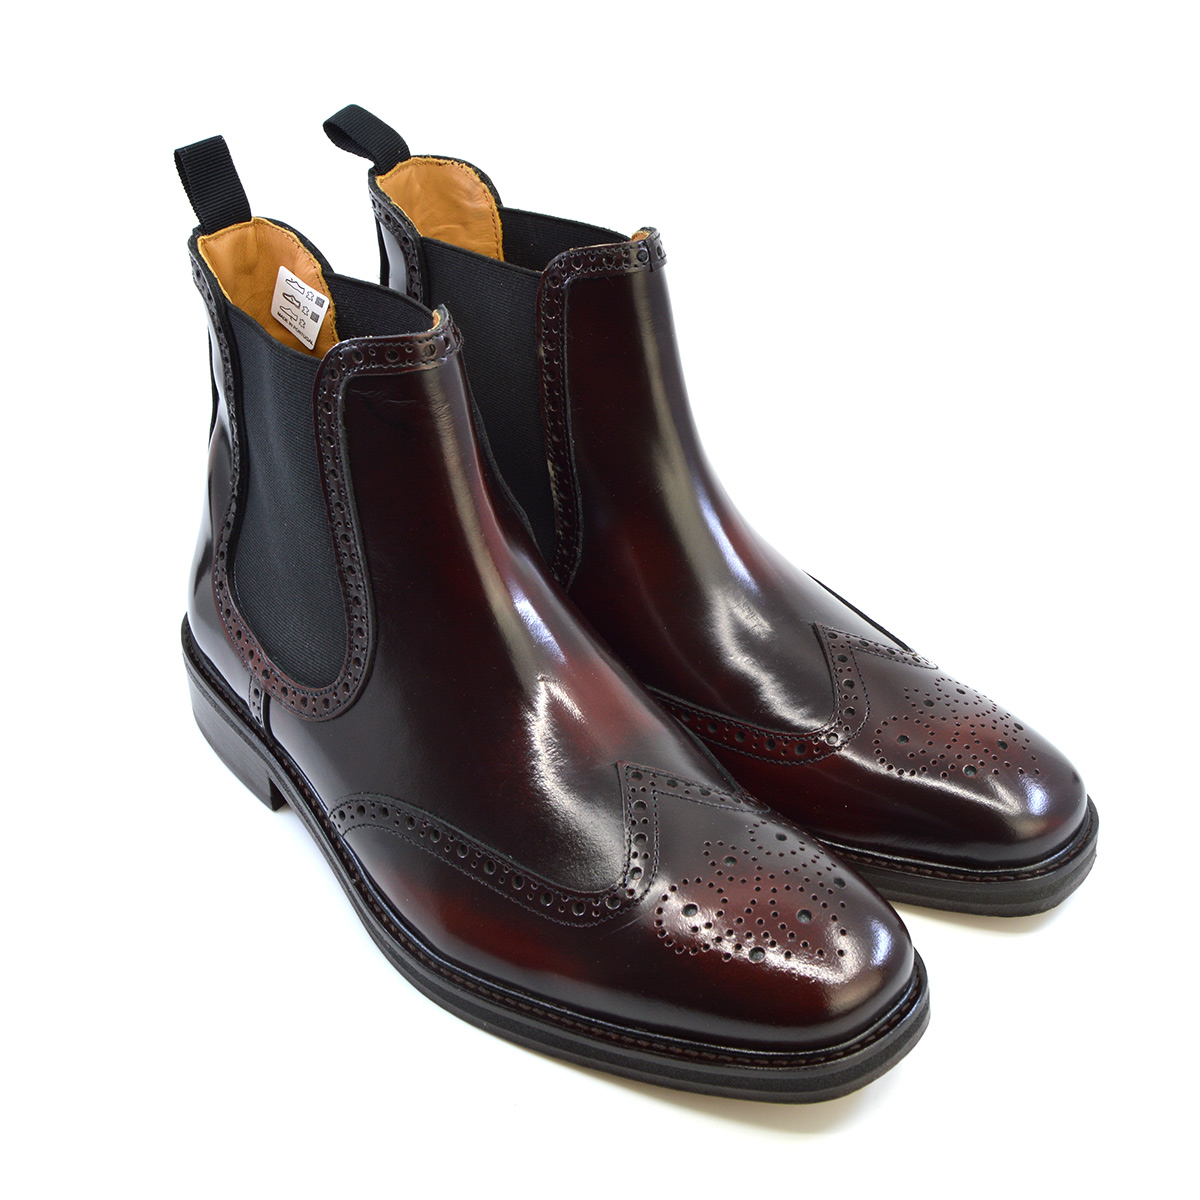 The Thomas – Oxblood Dealer Boots